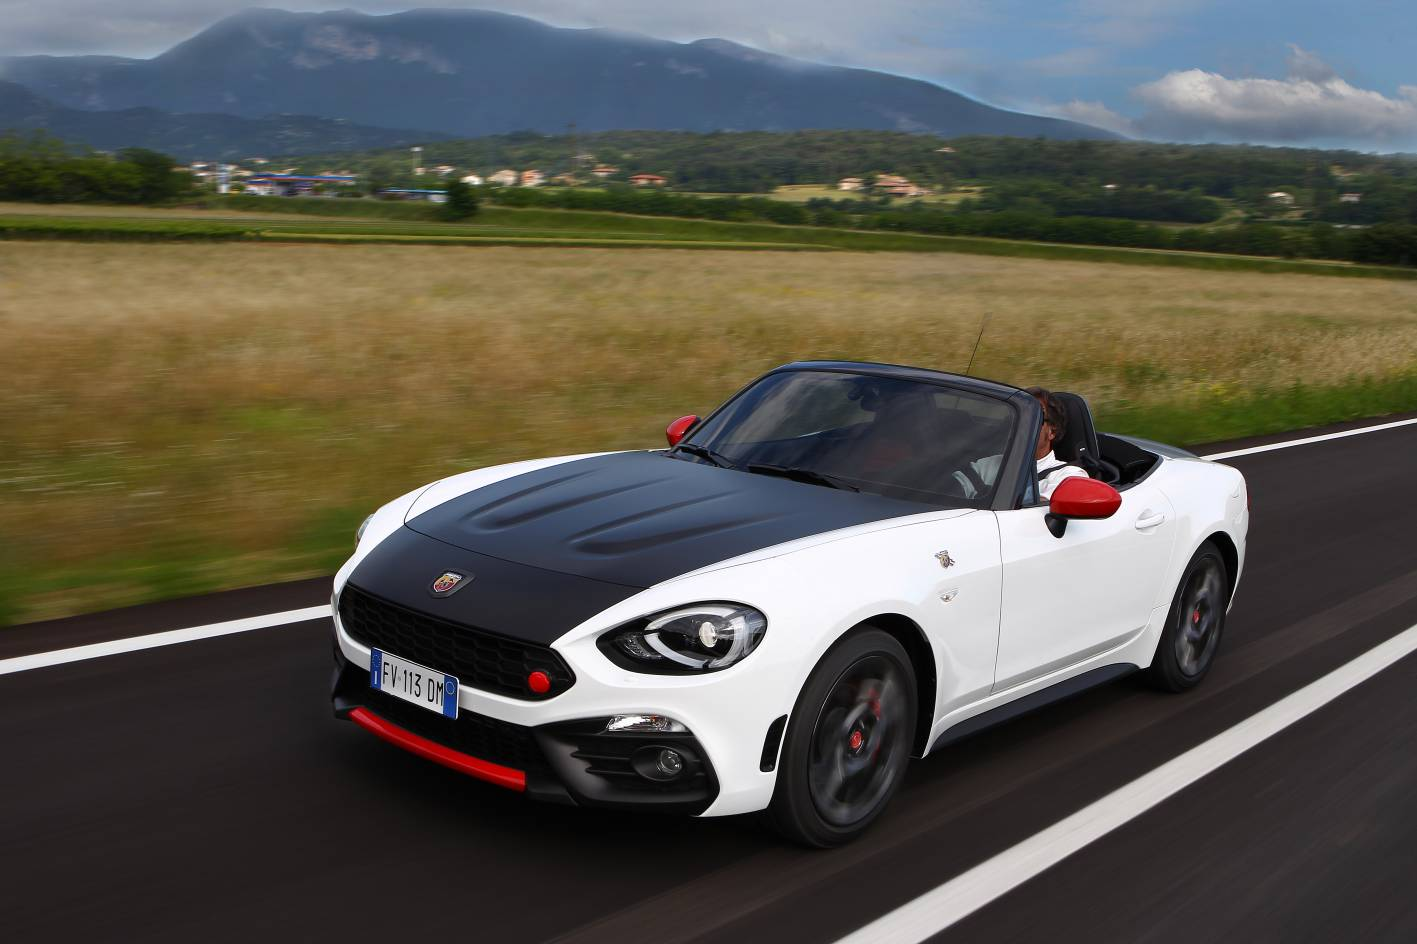 2017 abarth 124 spider performance details confirmed for australia practical motoring. Black Bedroom Furniture Sets. Home Design Ideas